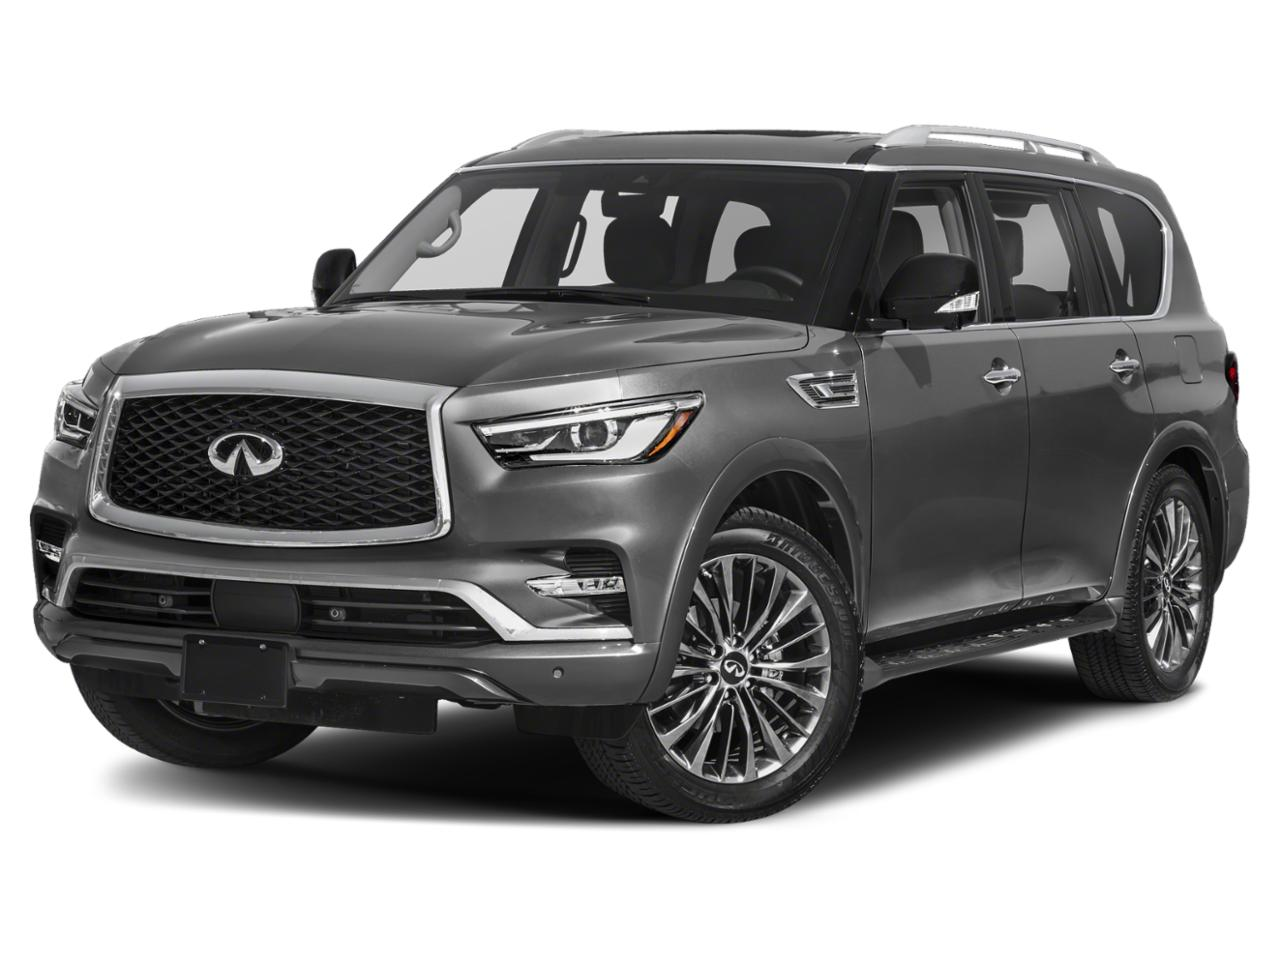 2021 INFINITI QX80 Vehicle Photo in Dallas, TX 75209